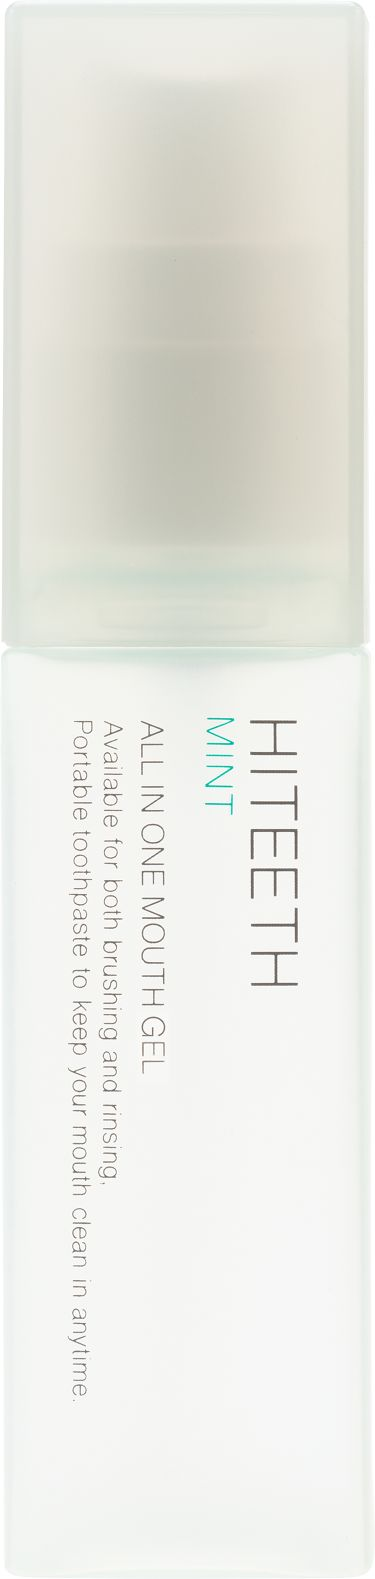 RBP HITEETH ALL IN ONE MOUTH GEL